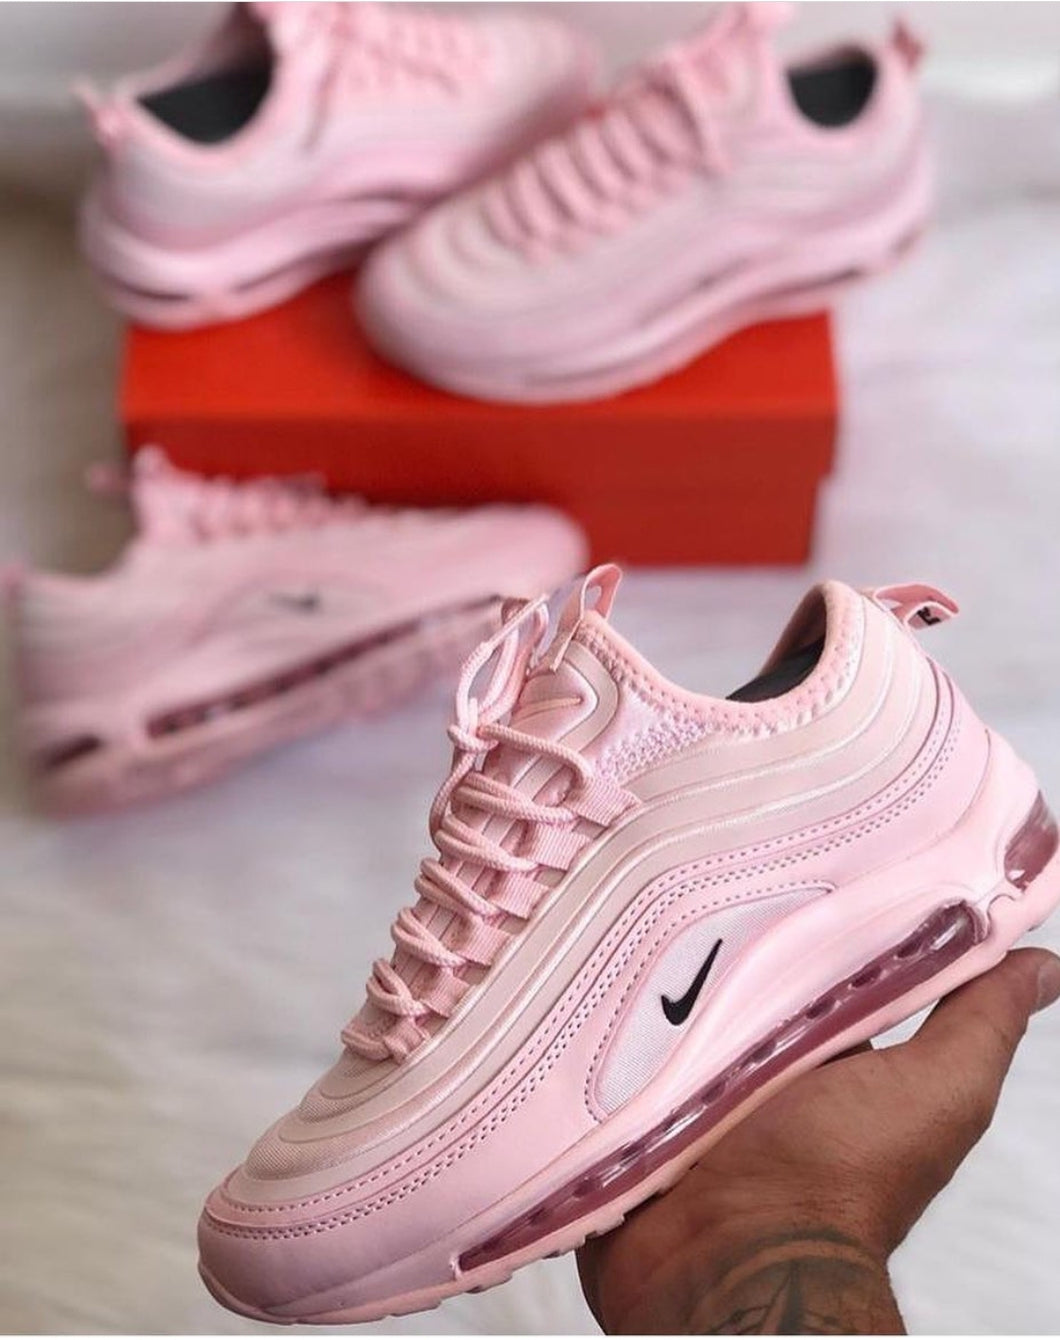 Air Max 97 Pink – Boutique Simply 4 U